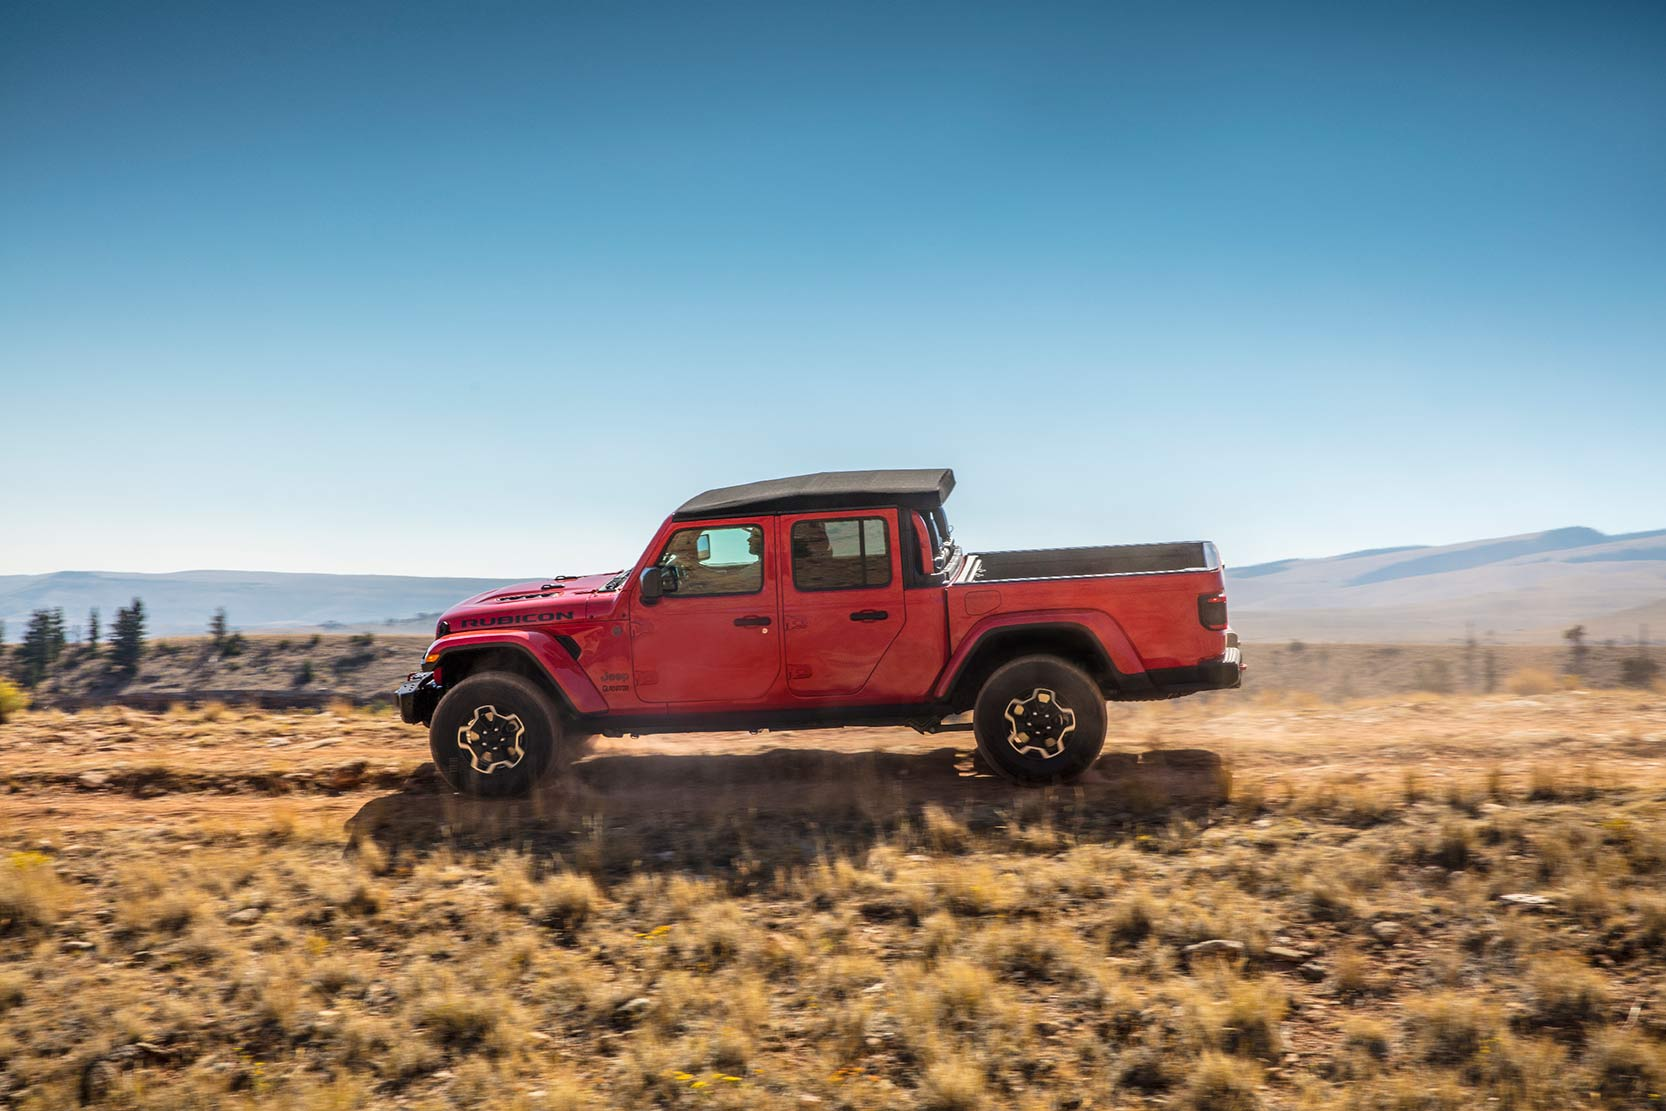 Exterieur_Jeep-Gladiator_97